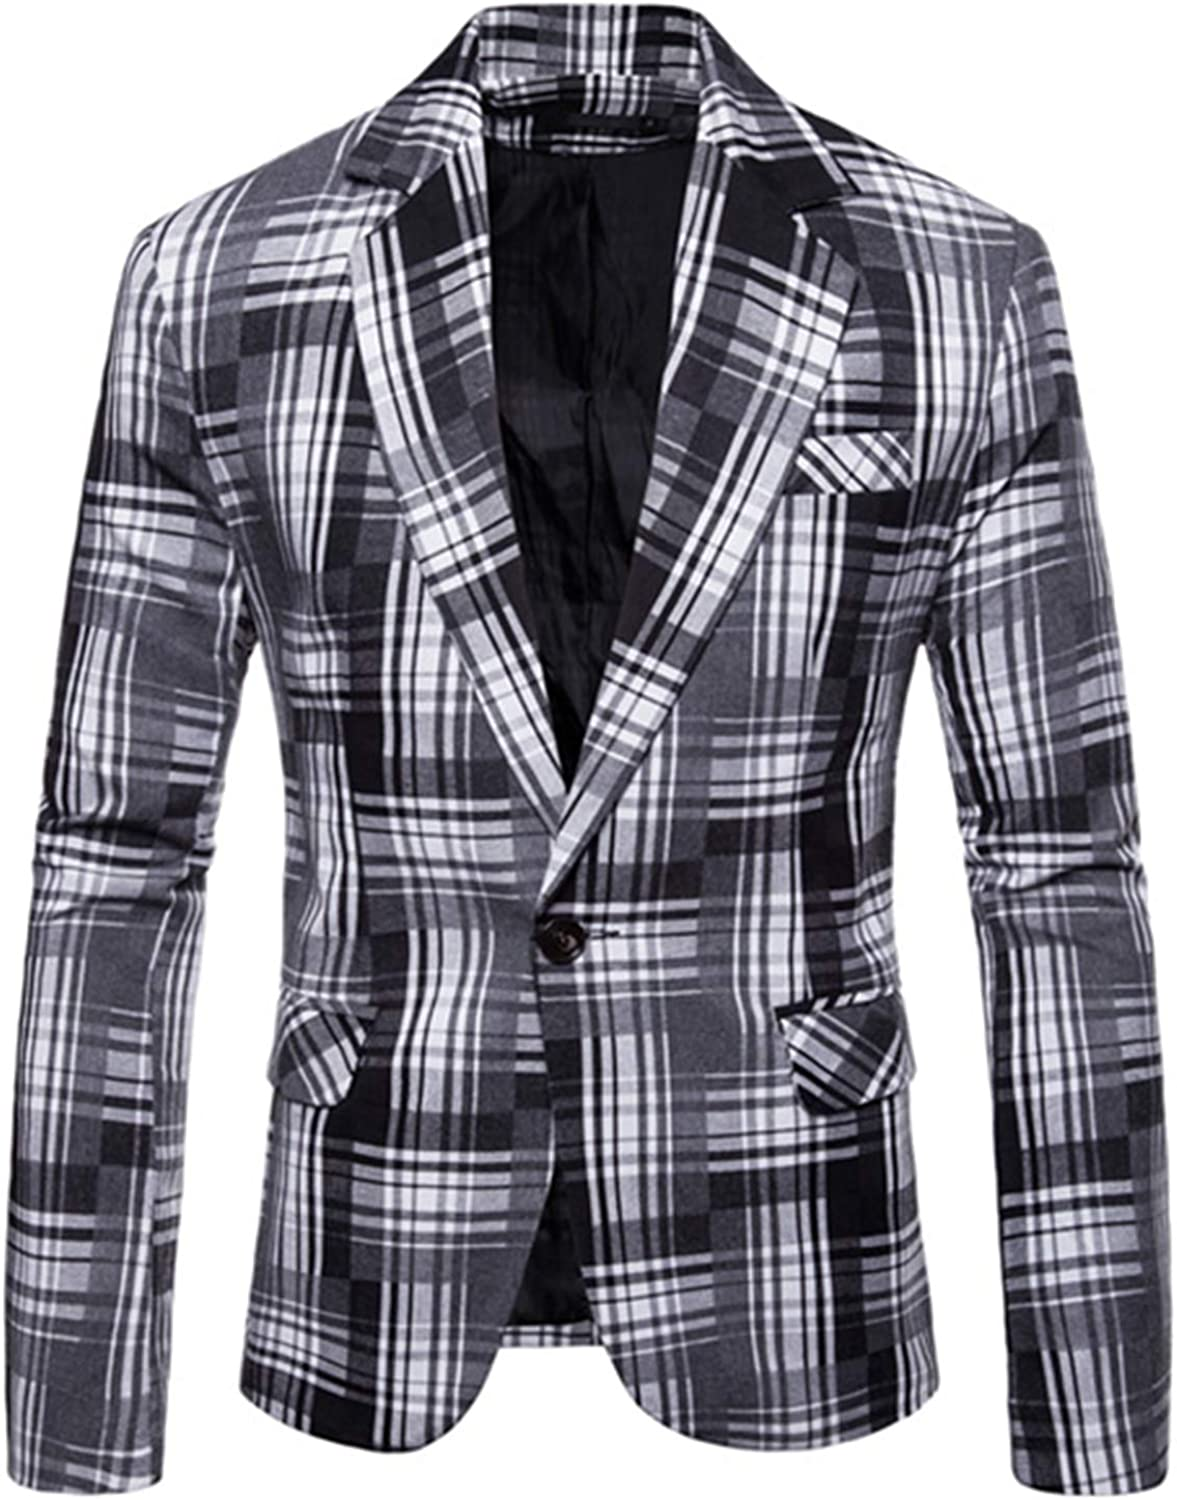 Gradient Designed Plaid Suit Men Single-Breasted Blazer Jacket Mens Slim Business Casual Holiday